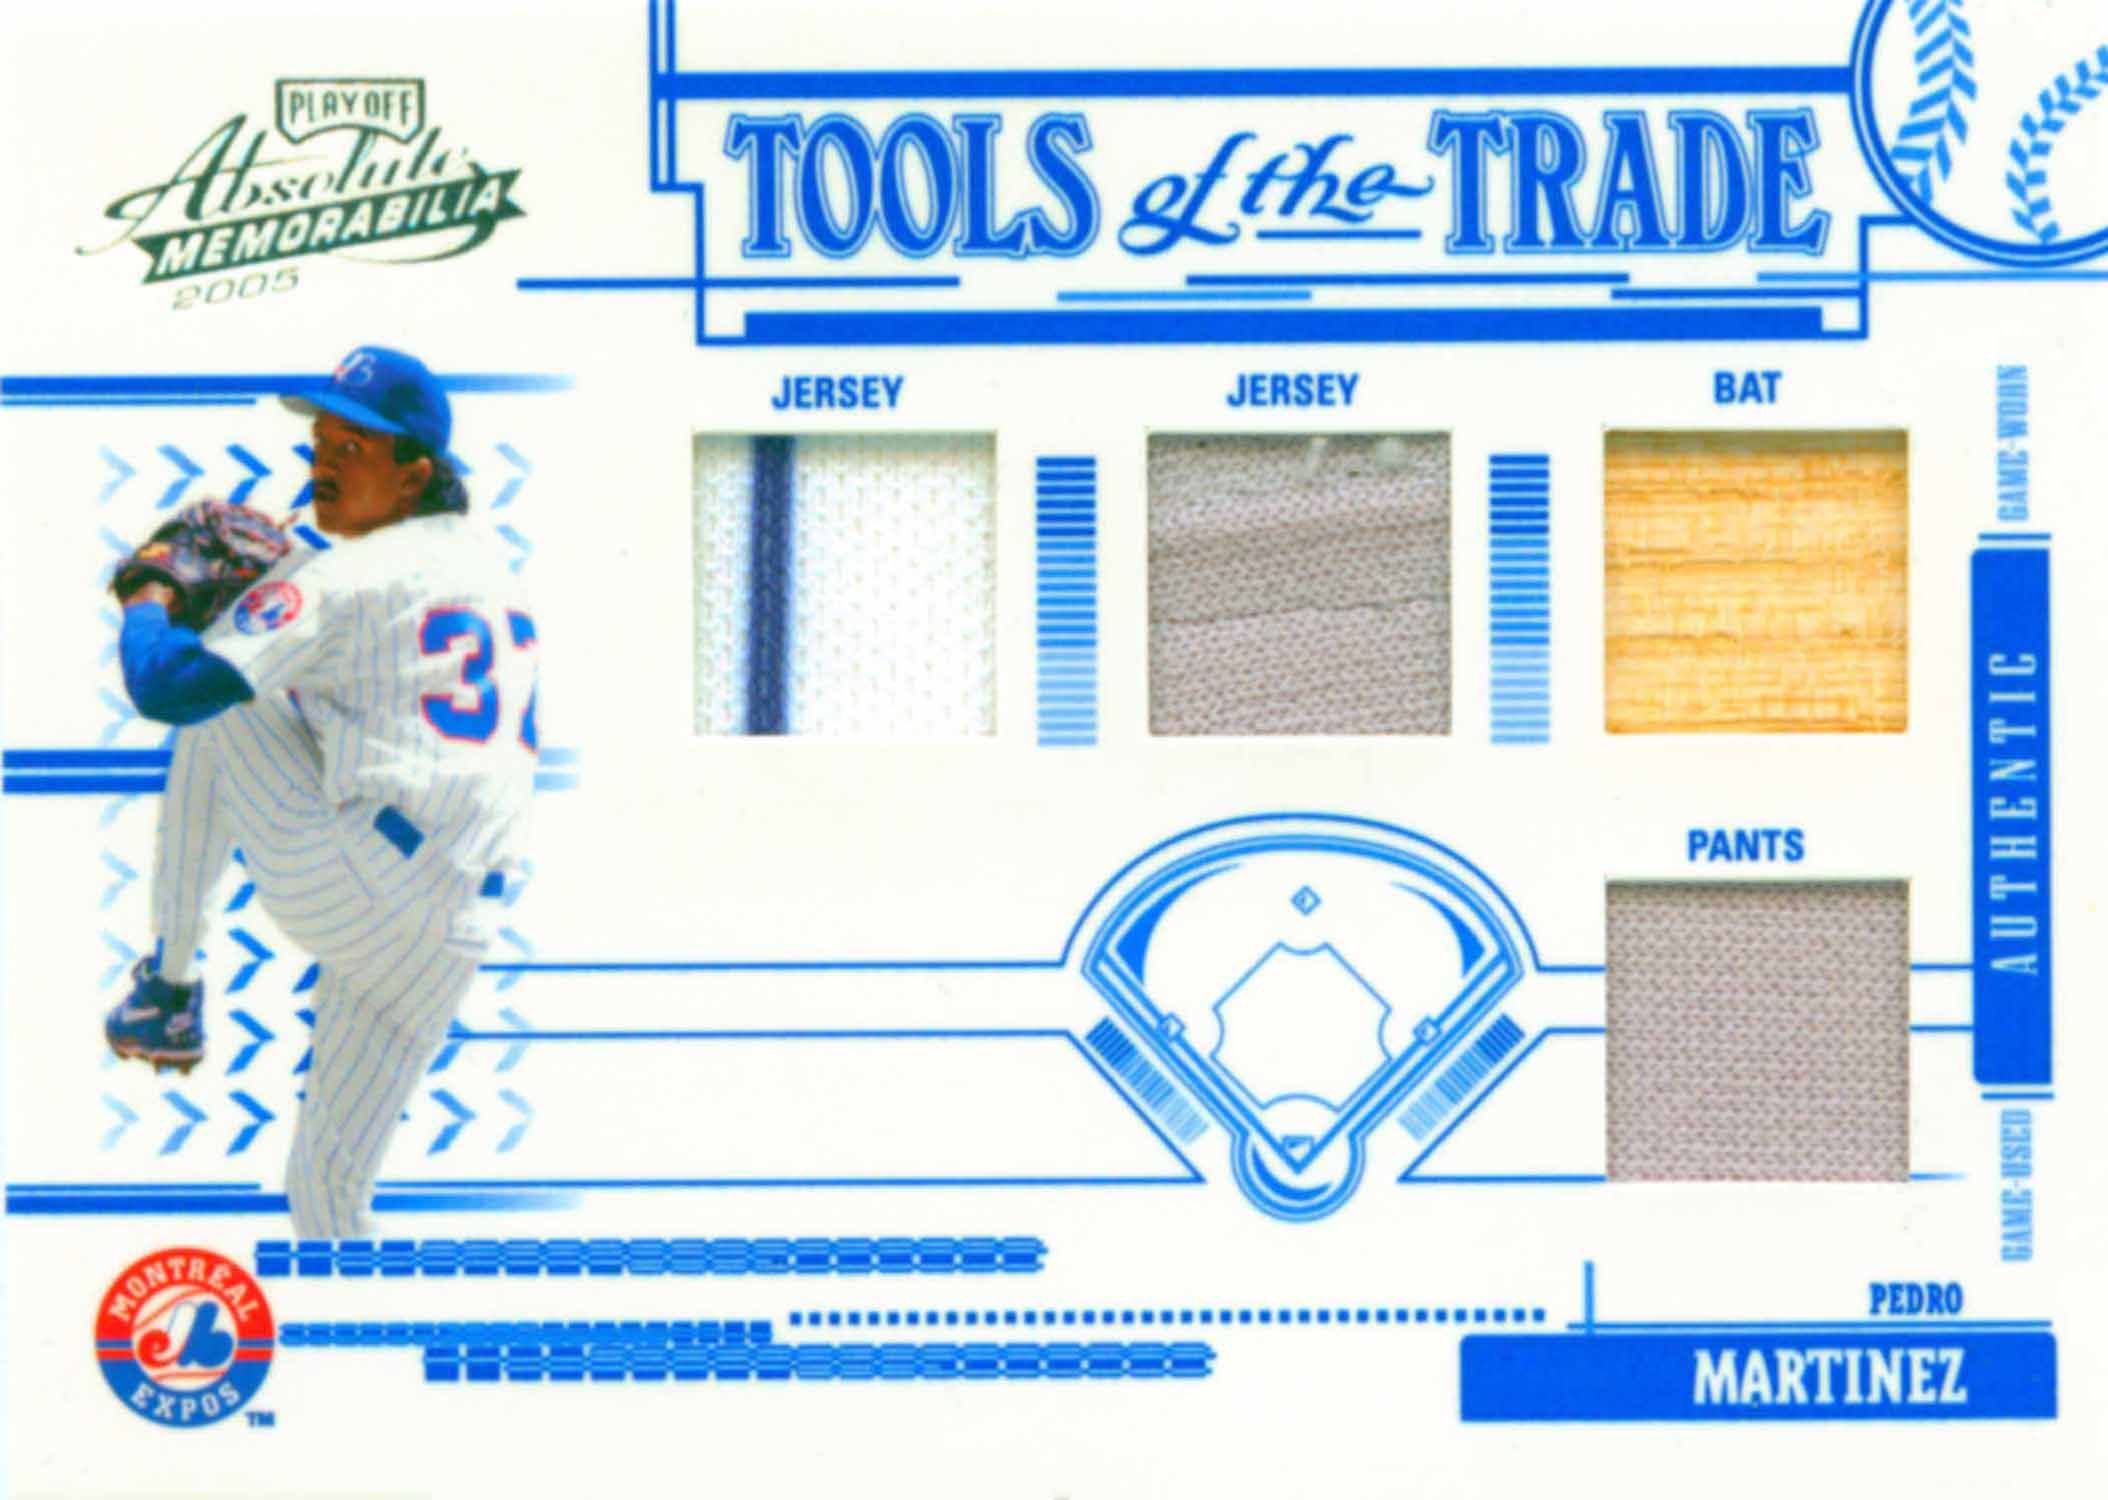 2005 Absolute Memorabilia Tools of the Trade Swatch Quad Bat-Jersey-Jersey-Pants